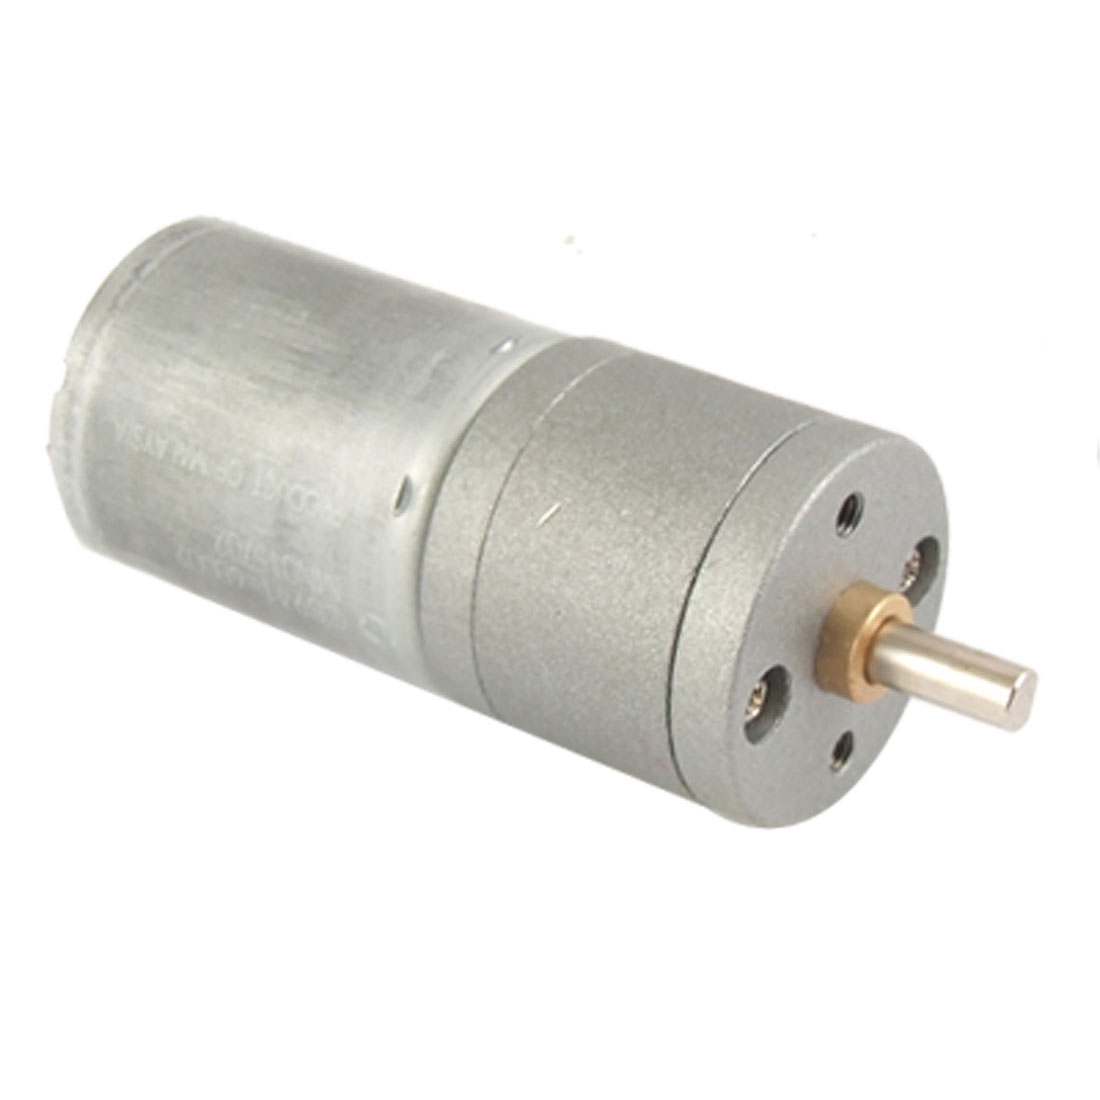 DC12V 40-50mA 100RPM Electric DC Planetary Geared Motor